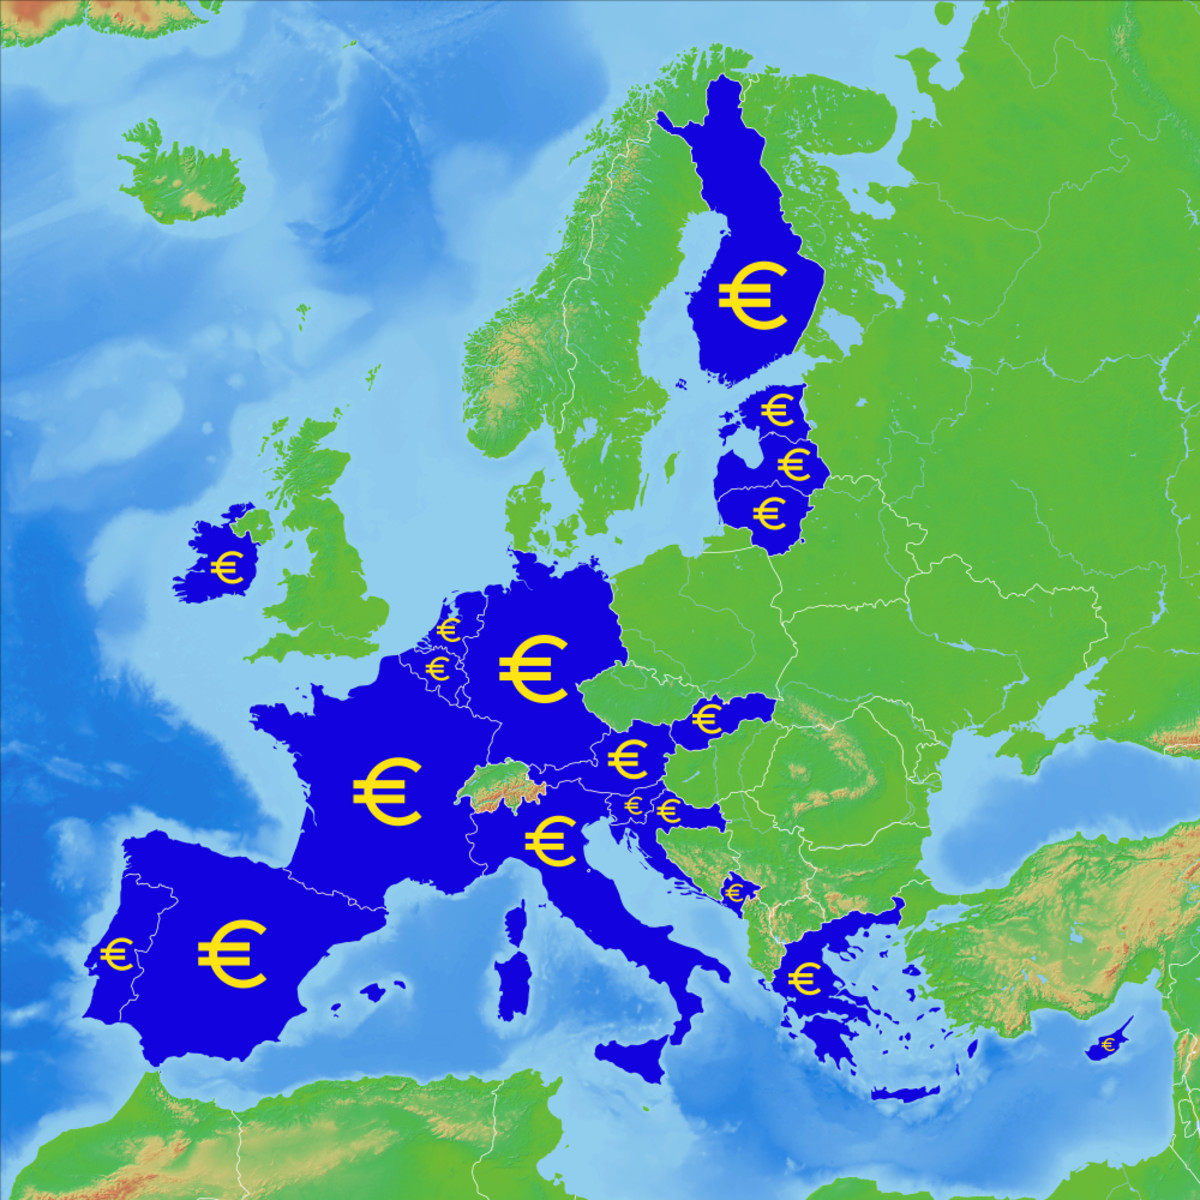 Not each out of 28 member states is using Euro as currency.